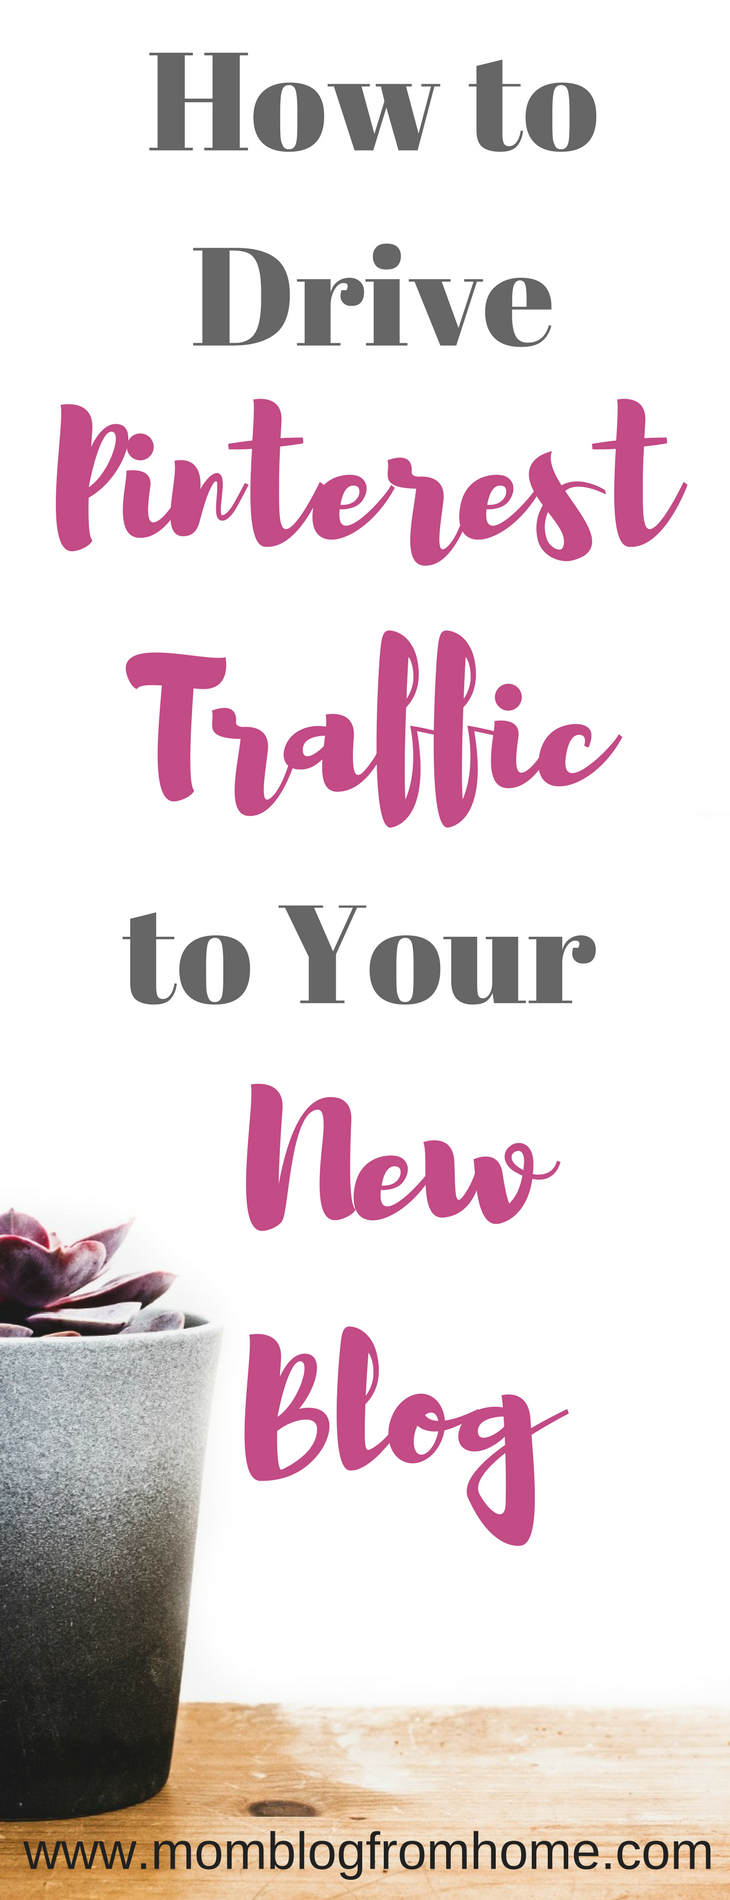 How to Drive Pinterest Traffic to Your New Blog - Mom Blog From Home